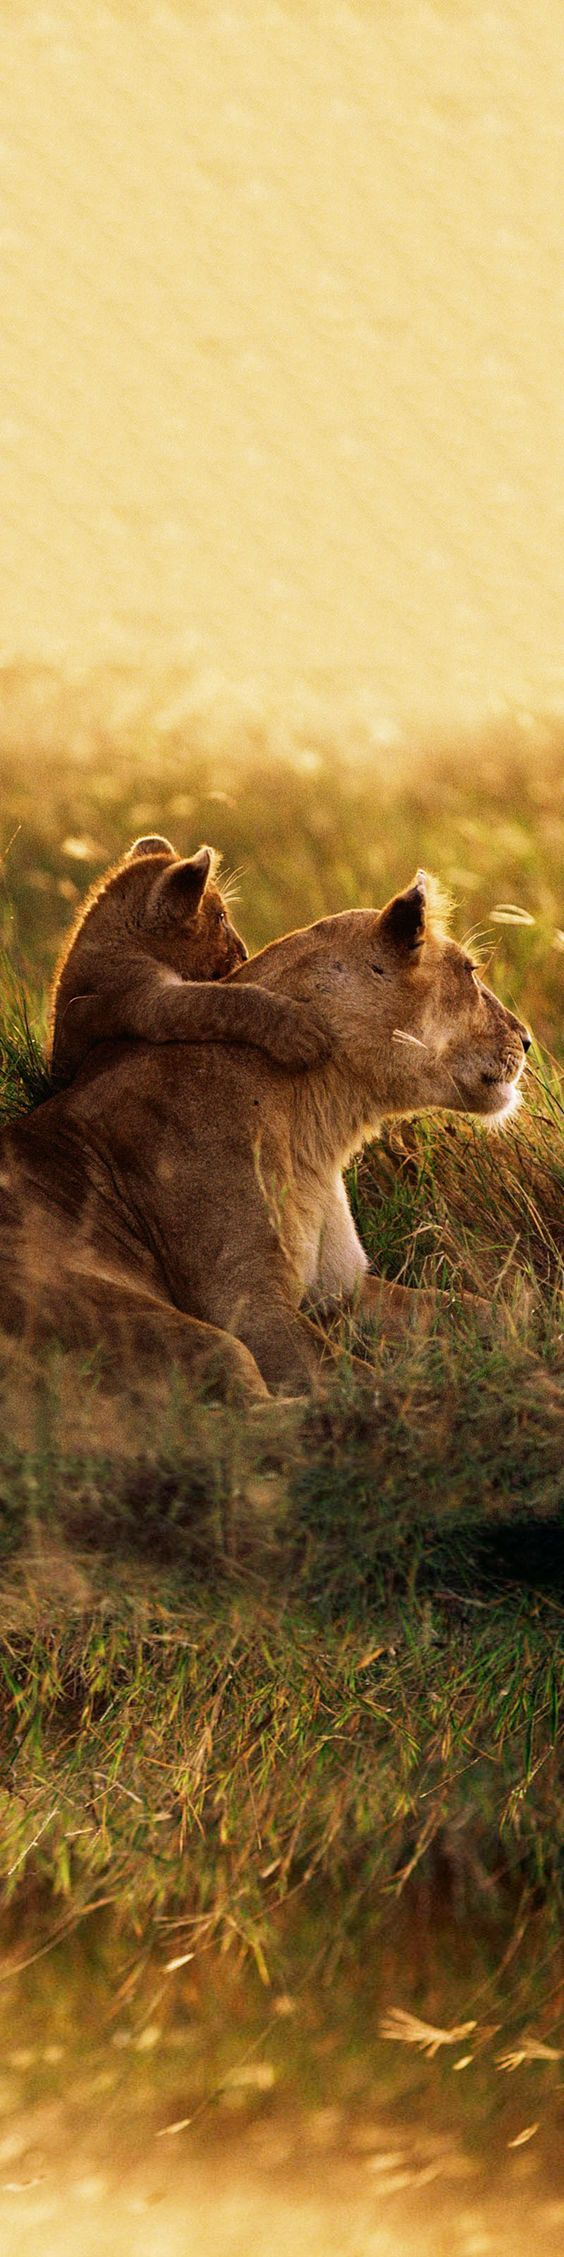 Be Maad - South Africa - Mother & Cub Watching the Sun Set - Explore the World with Travel Nerd Nici, one Country at a Time.